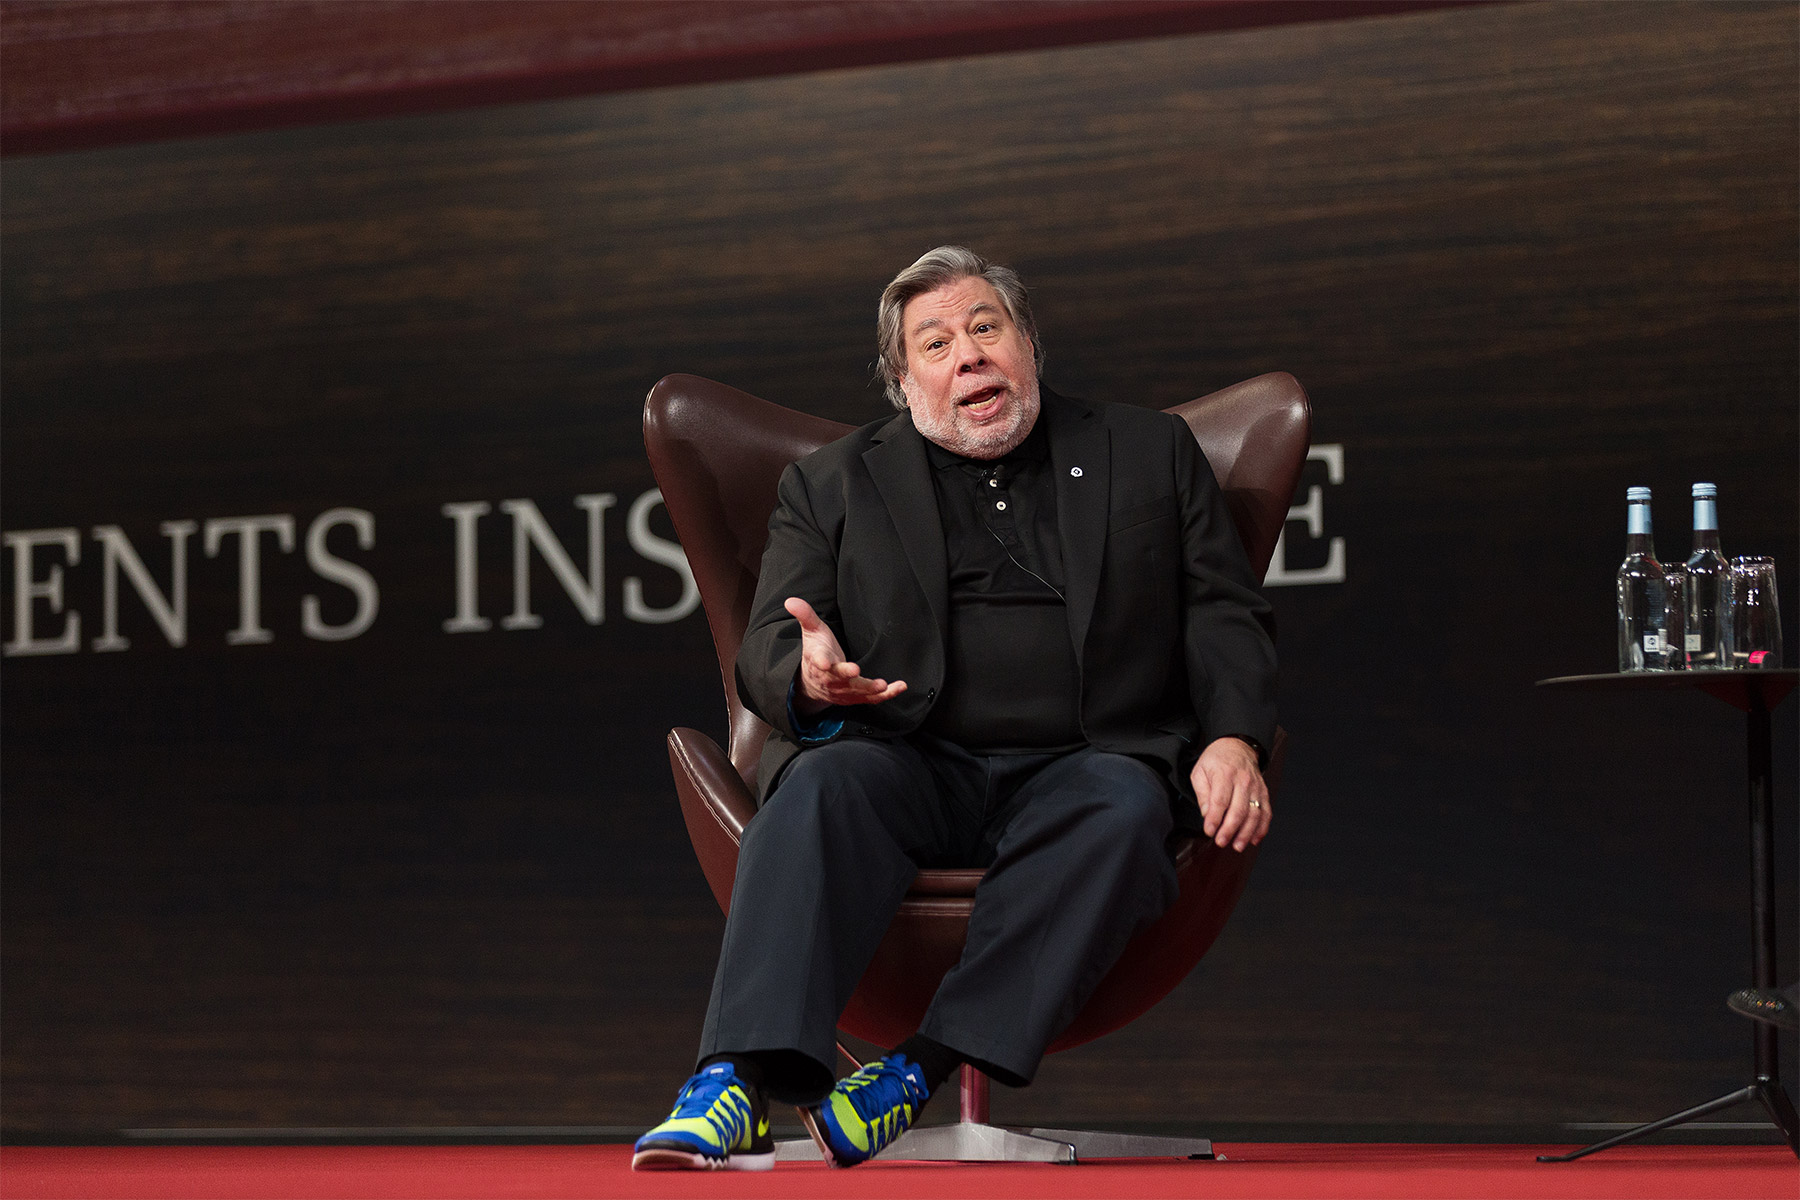 Steve_Wozniak_speaking